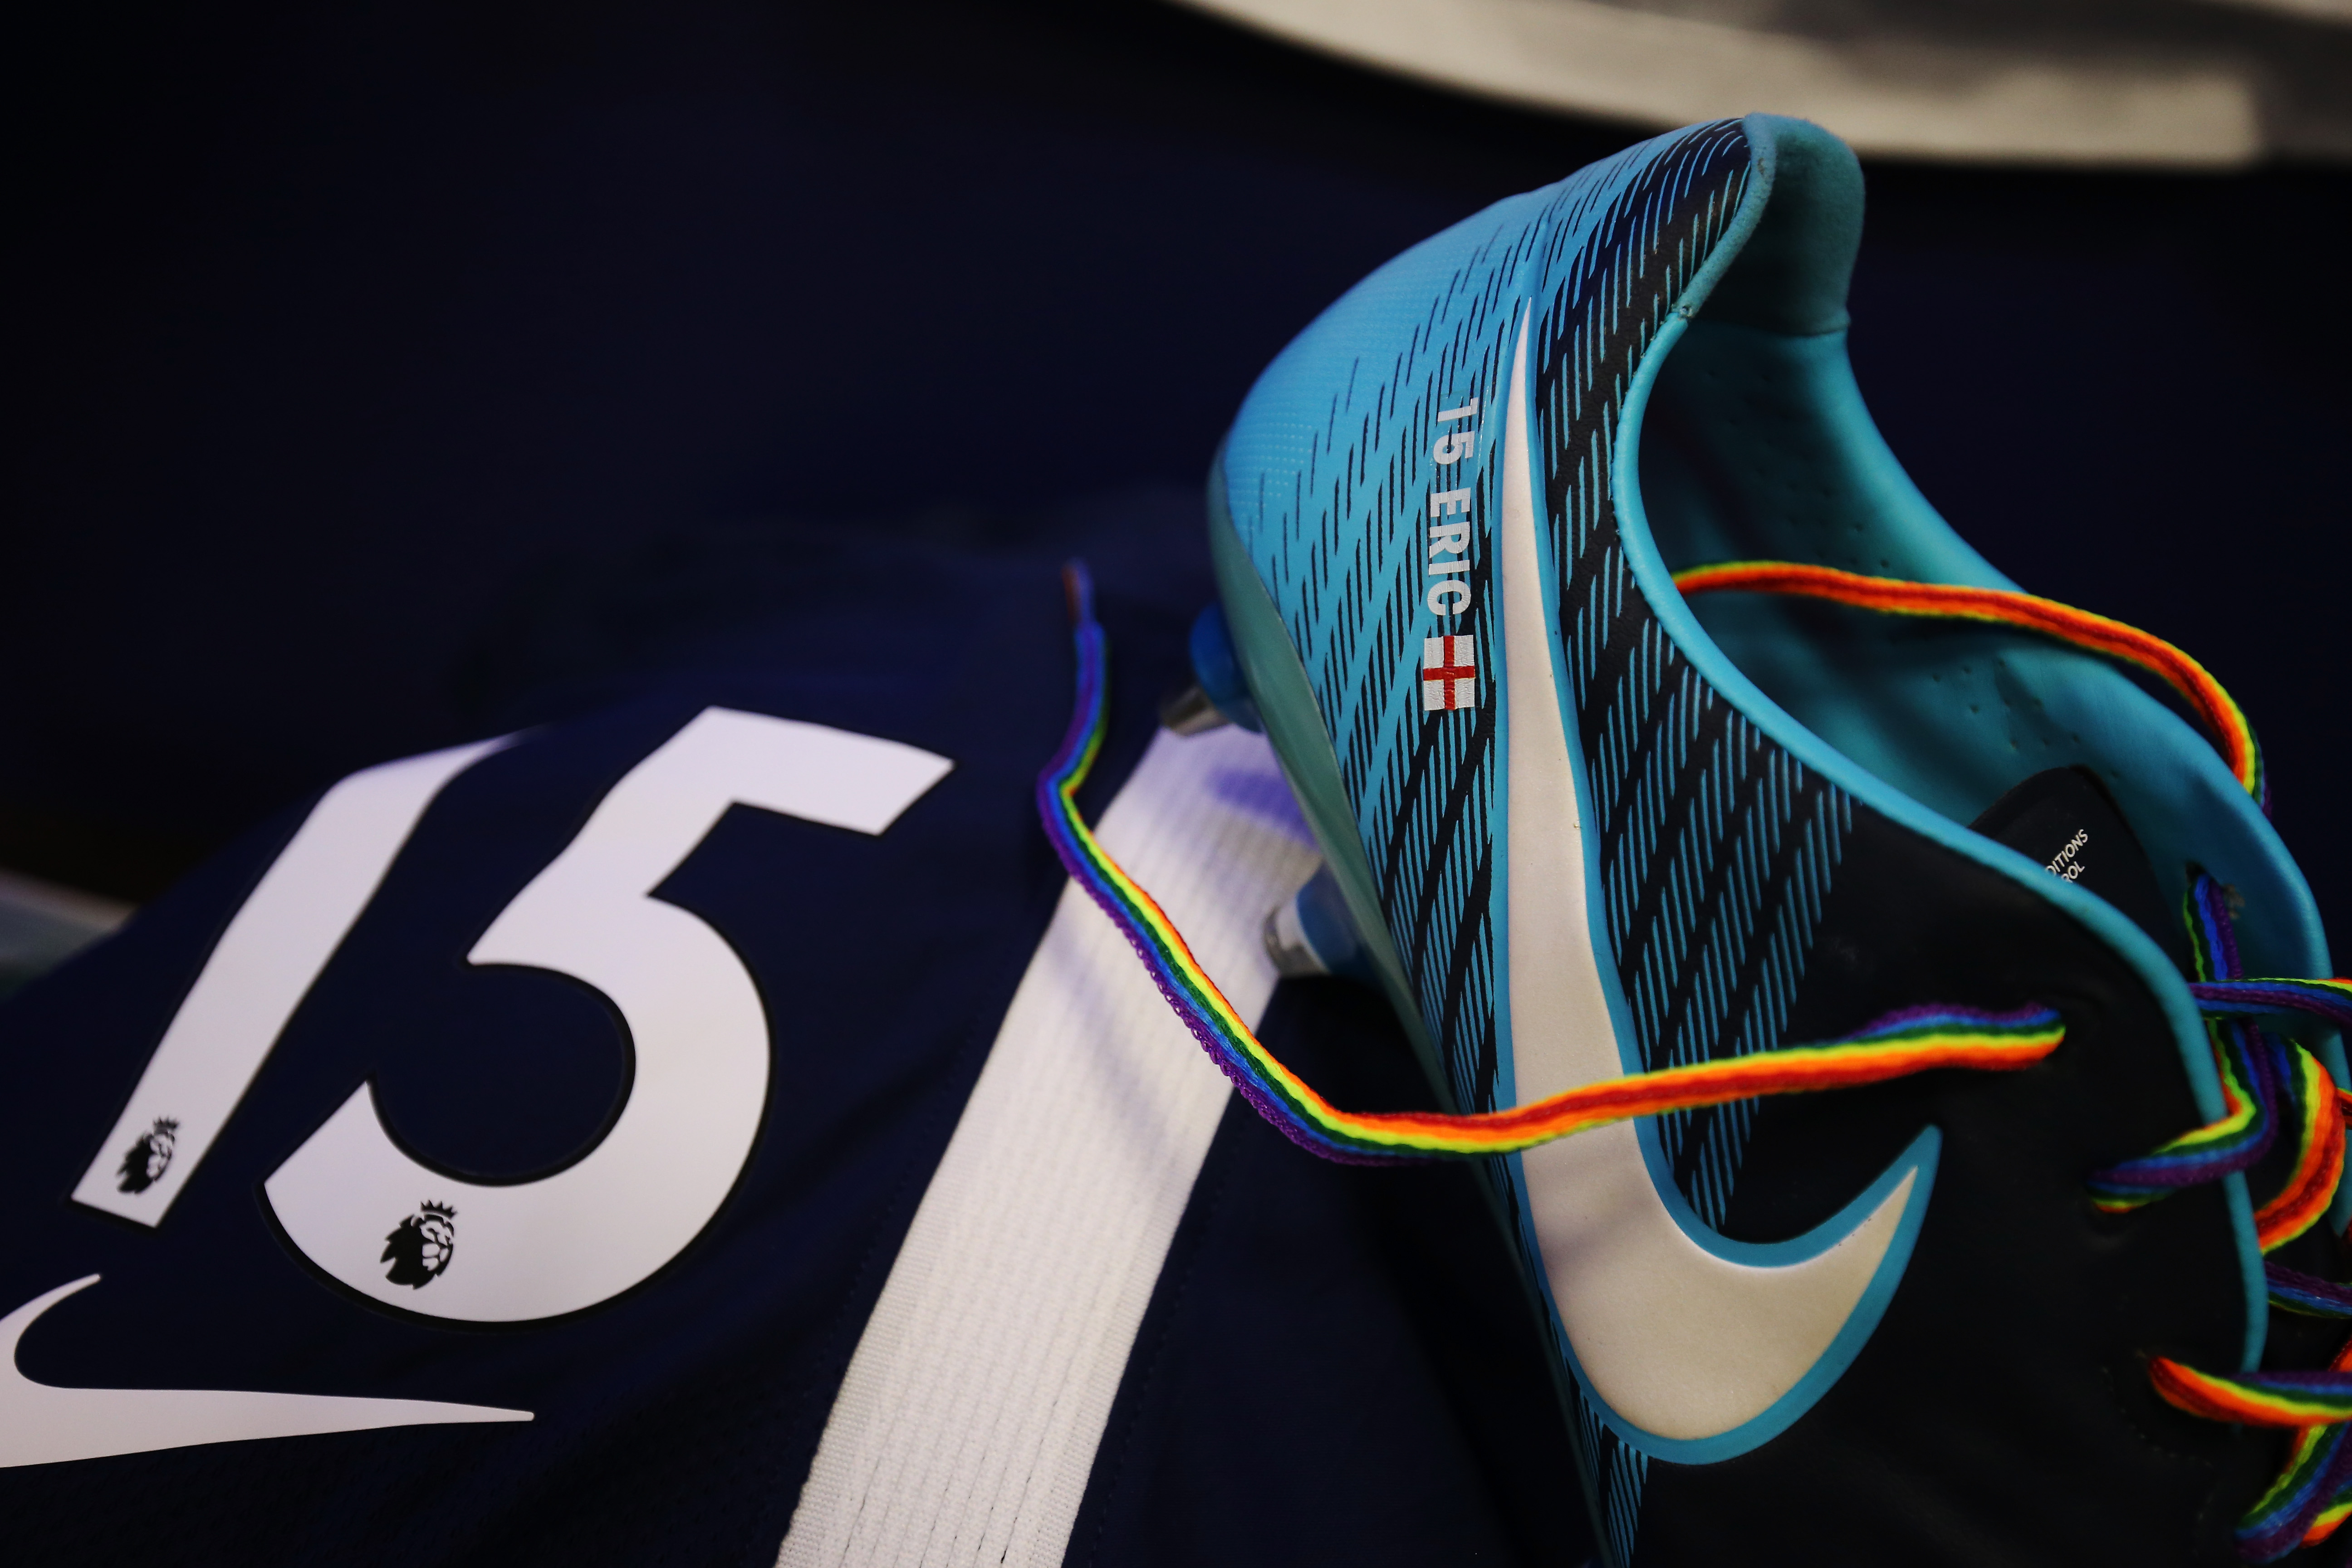 Photo displays a football boot with rainbow laces.